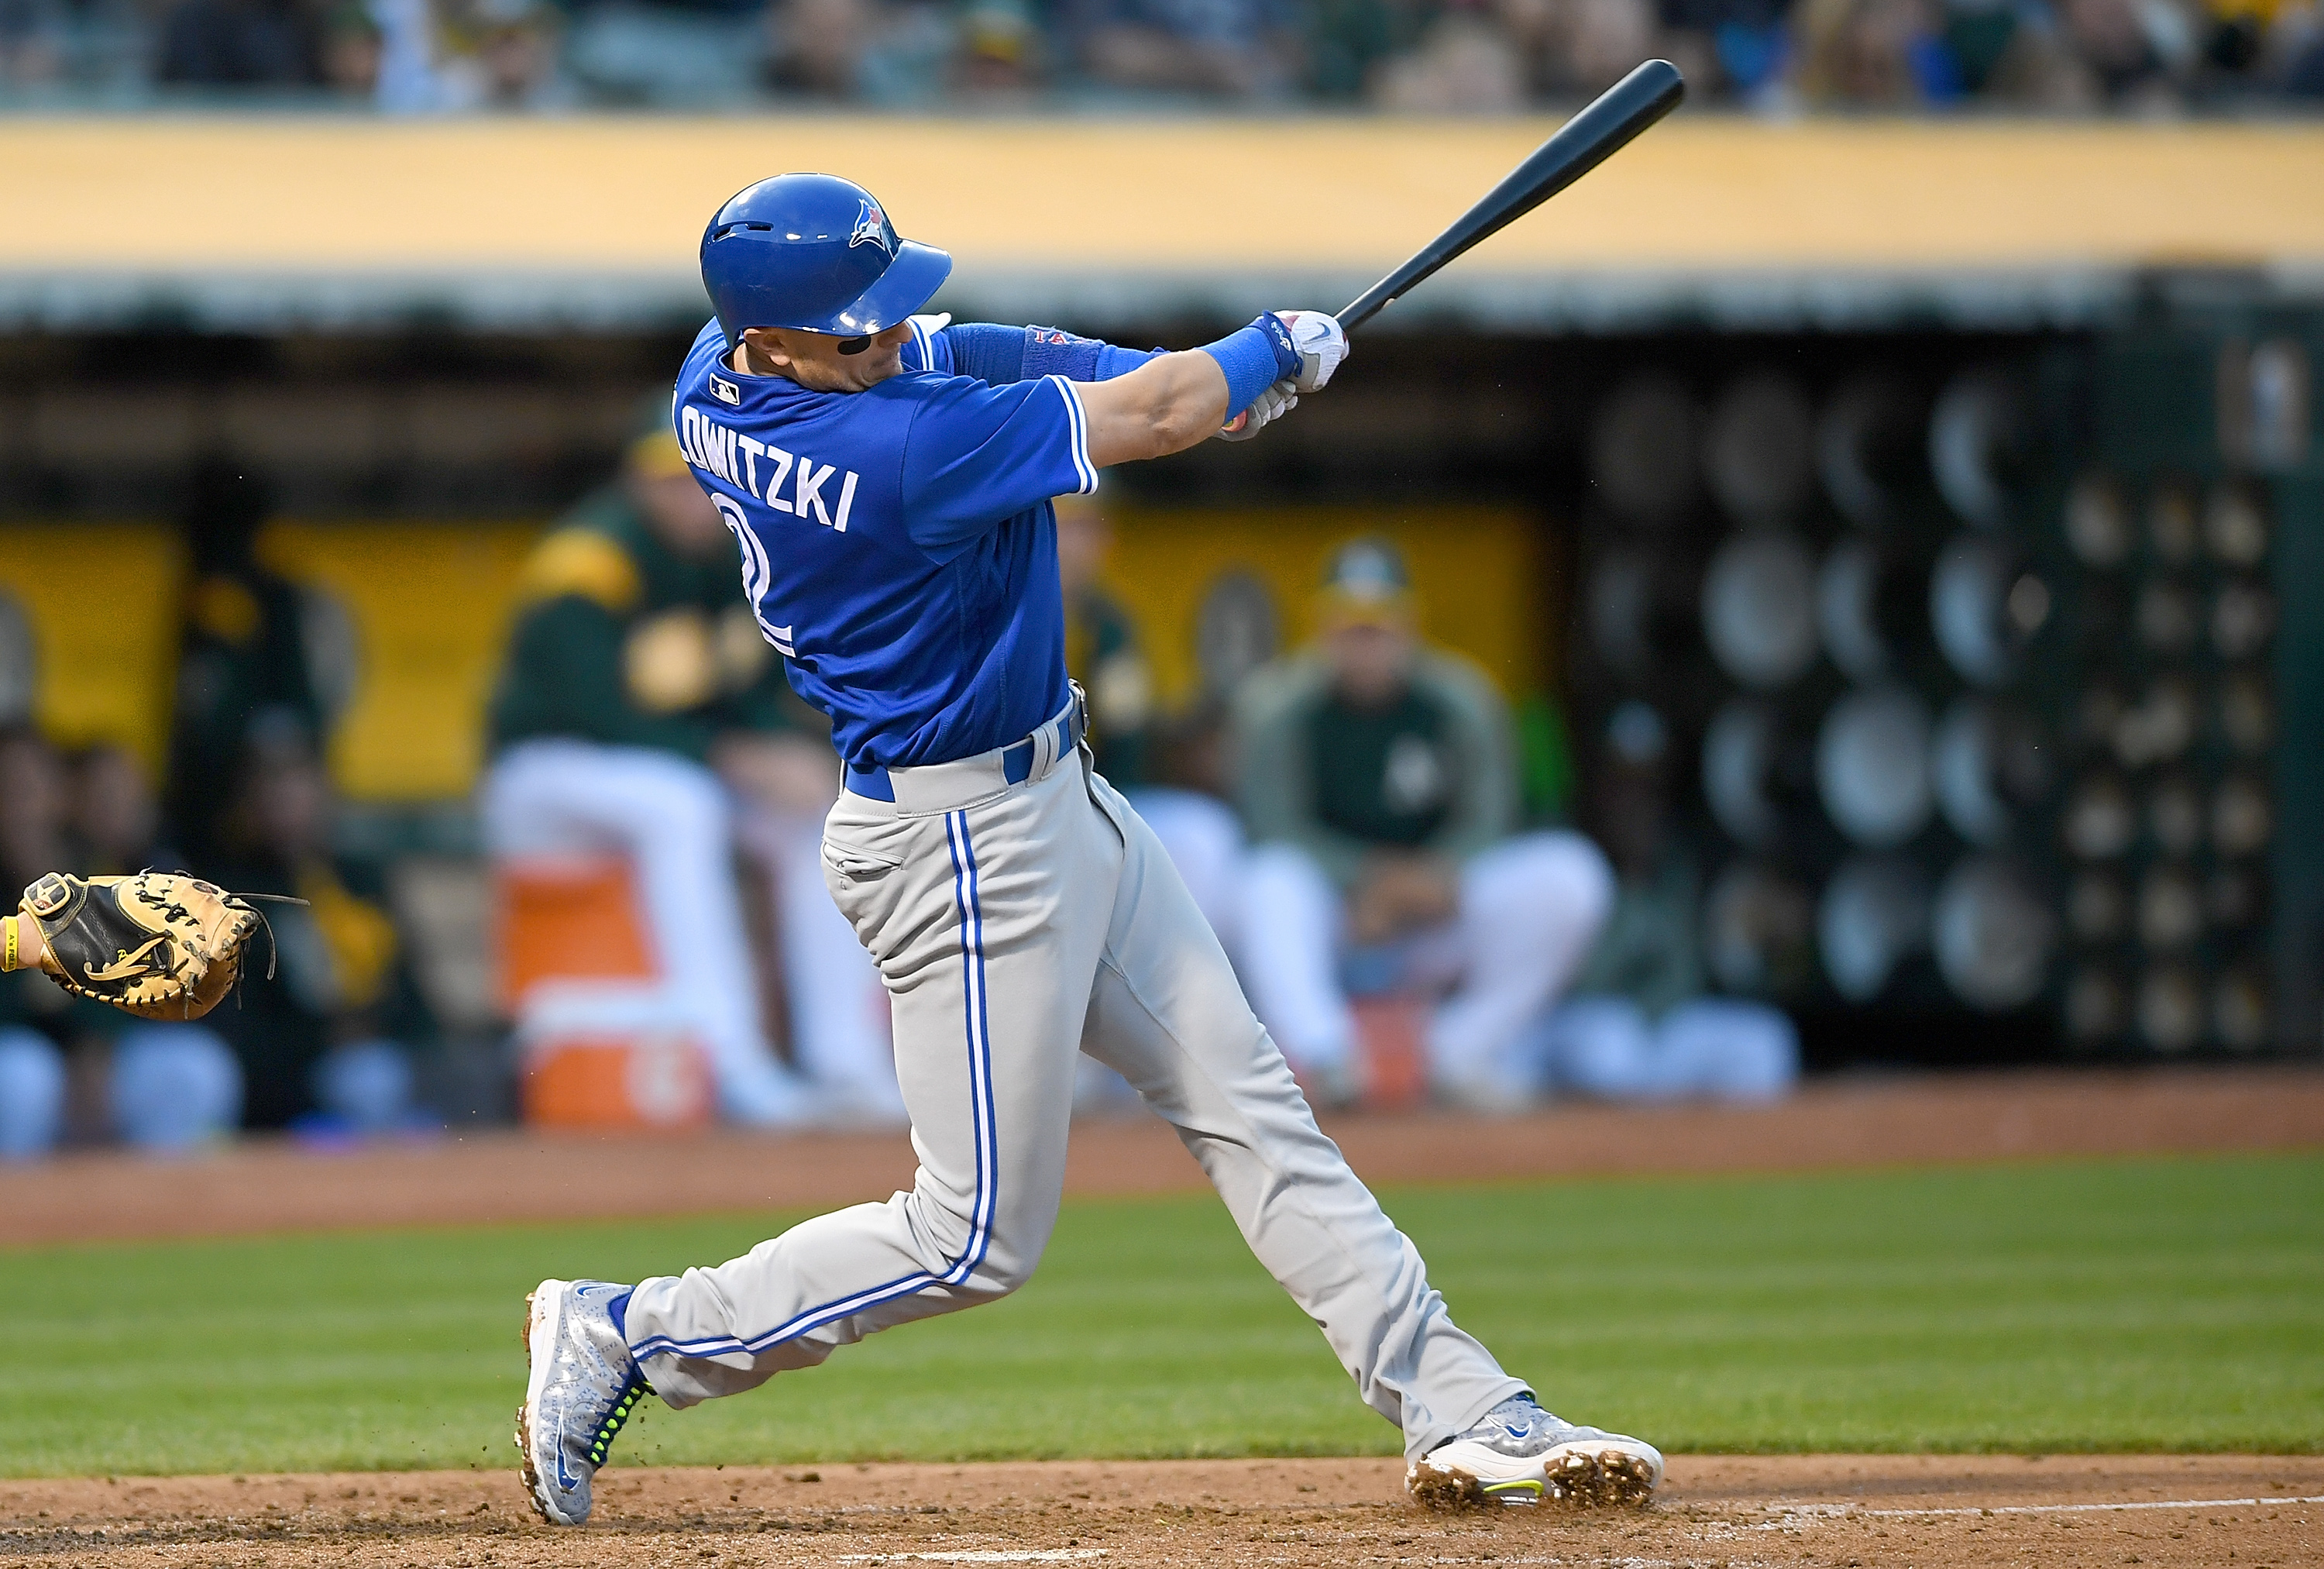 693173332-toronto-blue-jays-v-oakland-athletics.jpg